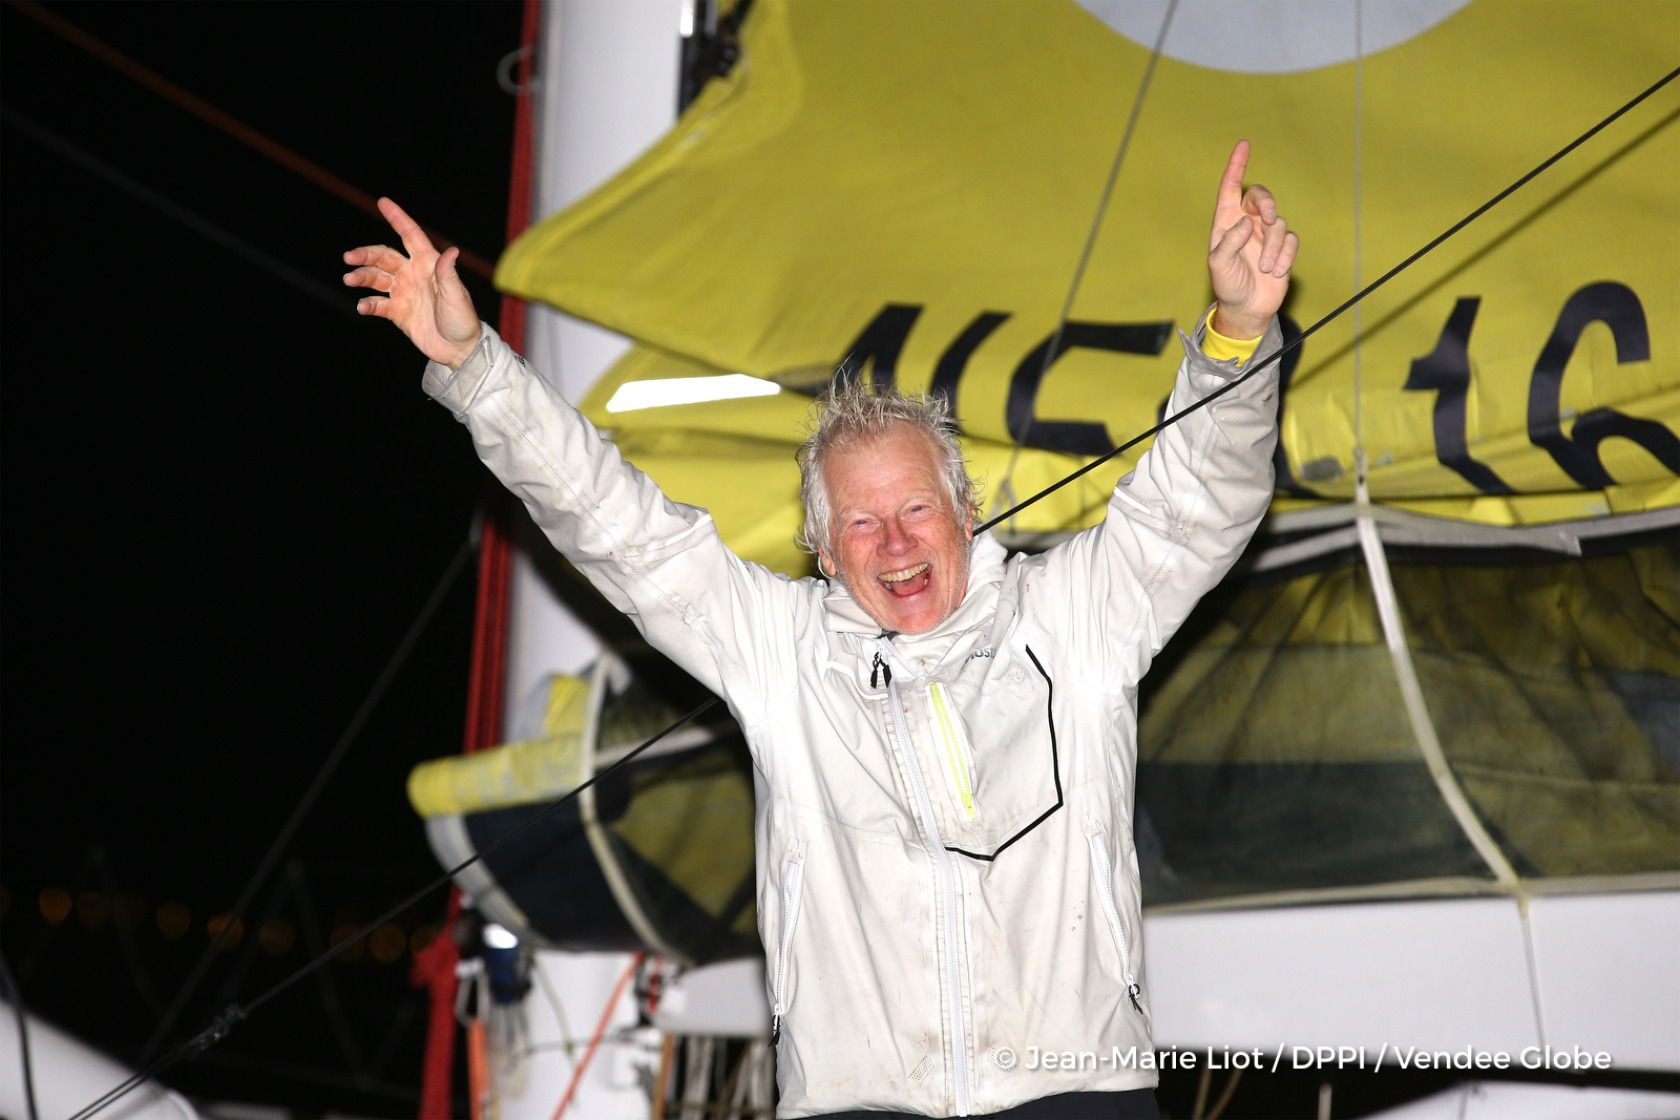 Celebration during Finish arrival of Pieter Heerema (NL), skipper No Way Back,17th of the sailing circumnavigation solo race Vendee Globe, in Les Sables d'Olonne, France, on March 2nd, 2017 - Photo Jean-Marie Liot / DPPI / Vendee GlobeArrivée de Pieter Heerema (NL), skipper No Way Back, 17ème du Vendee Globe, aux Sables d'Olonne, France, le 2 Mars 2017 - Photo Jean-Marie Liot / DPPI / Vendee Glo